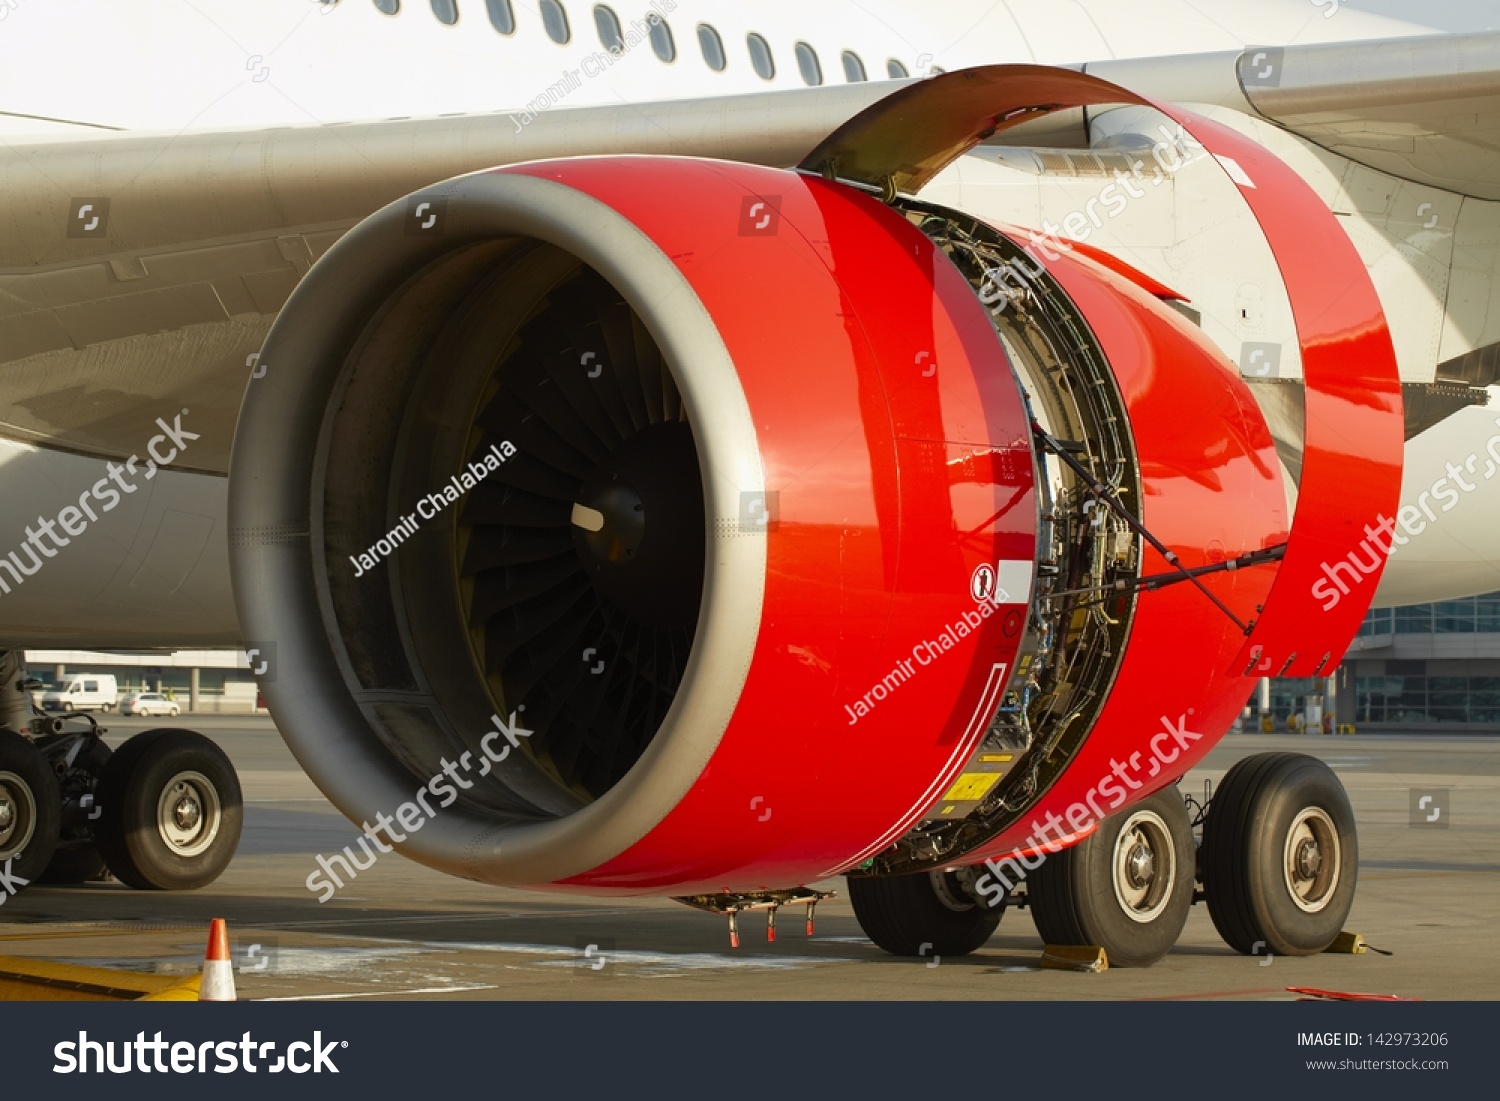 Engine Take Off : Maintenance of the jet engine before take off stock photo